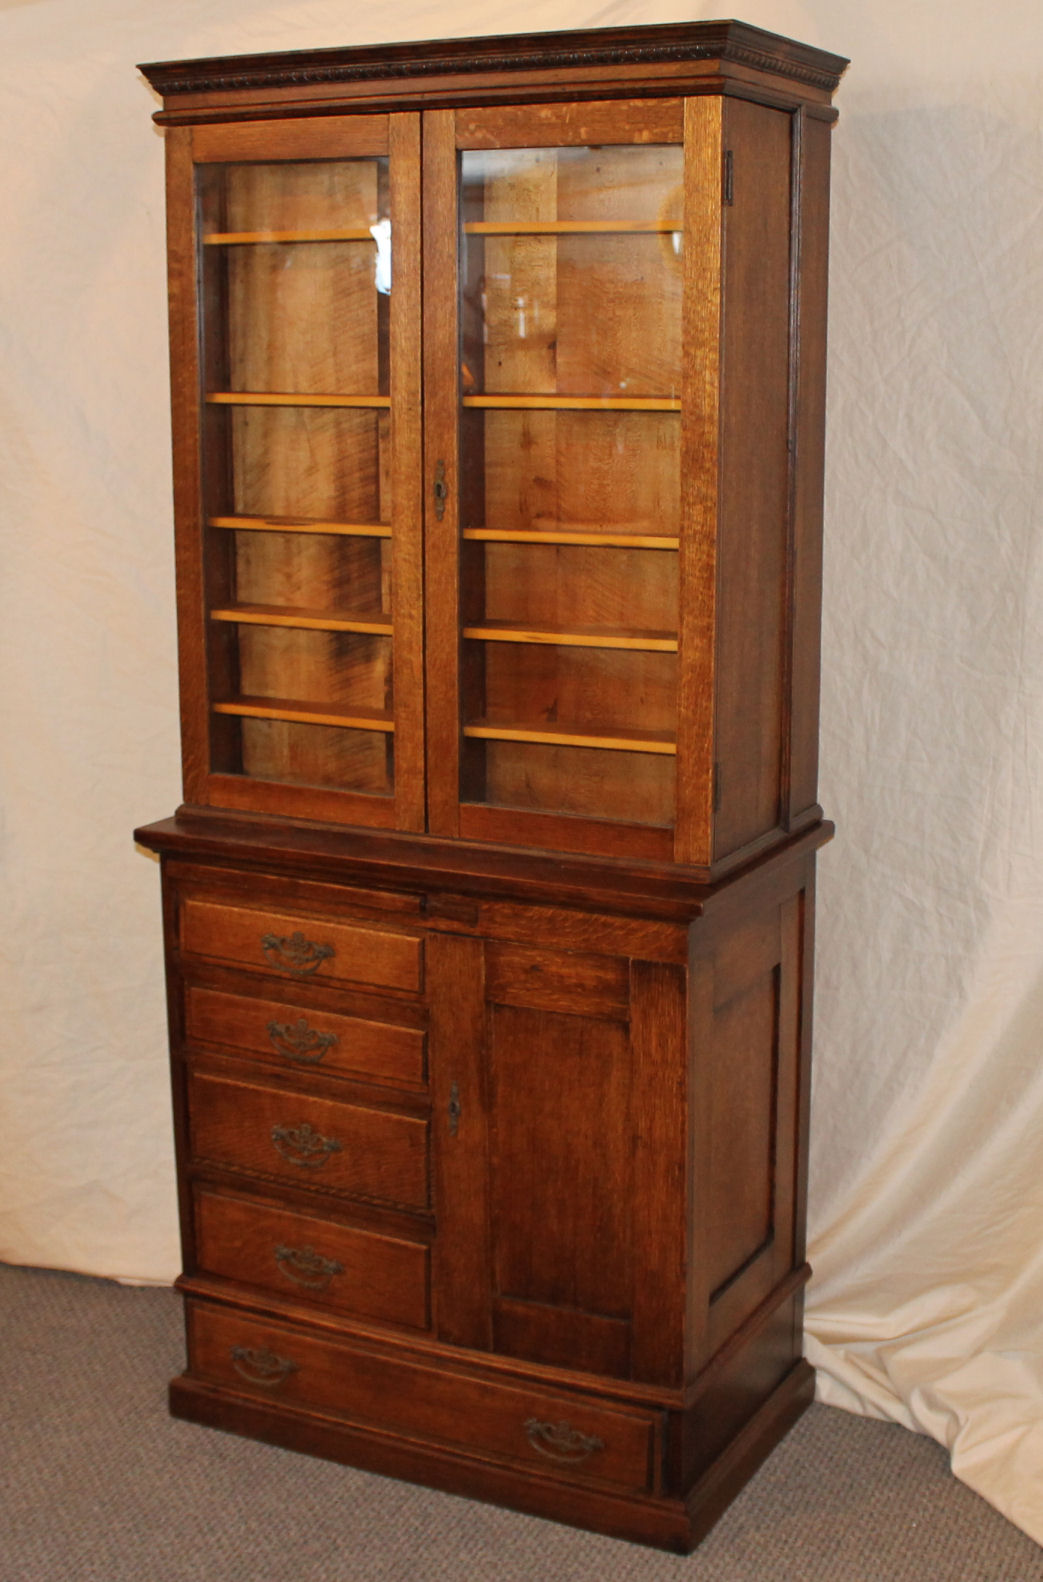 Bargain Johns Antiques  Antique Oak Doctor Medical Cabinet made by Frank Betz of Hammond